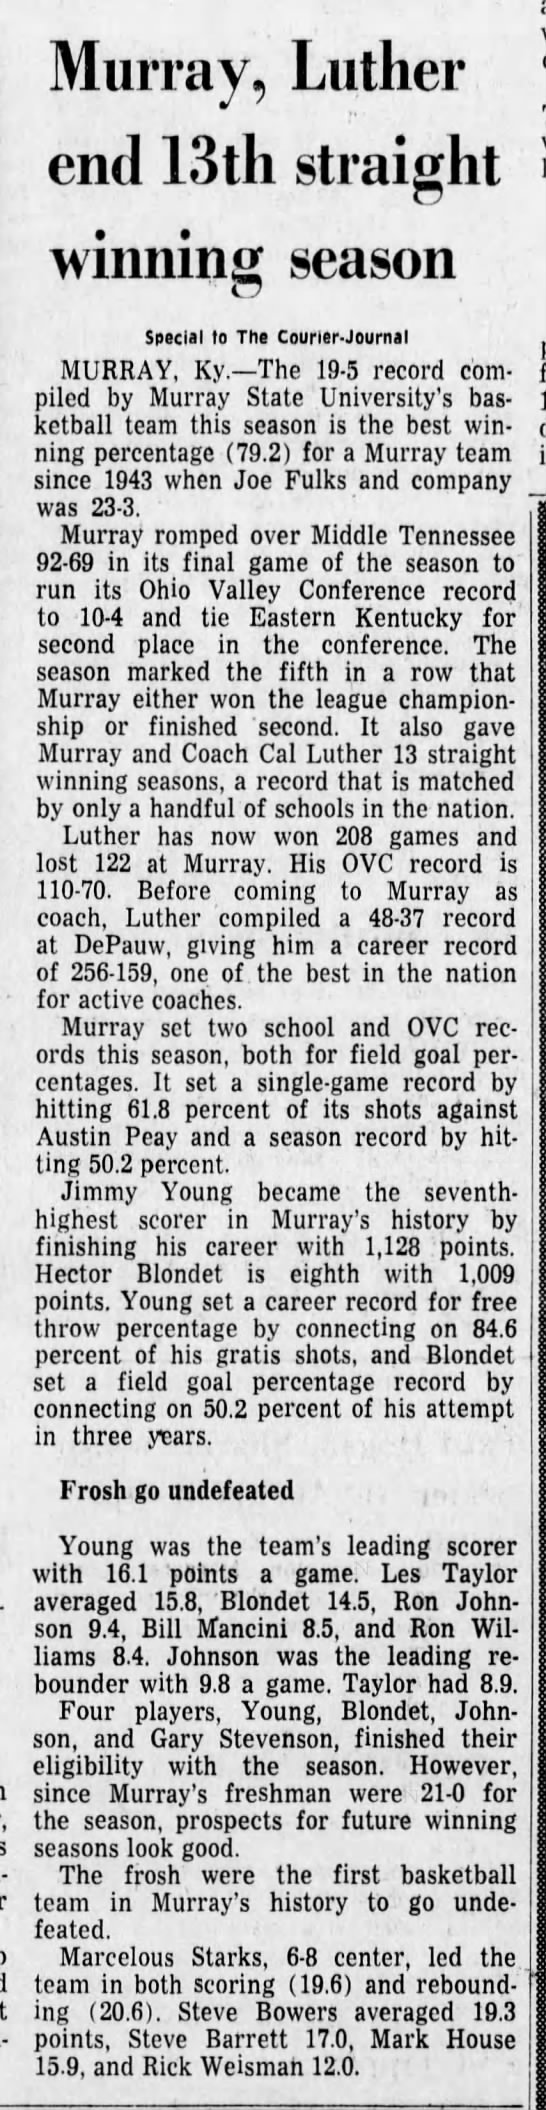 Jimmy Young Career Records Marcelous Starks leading scorer and rebounder for freshmen team. - Murray, Luther end 13th straight winning season...